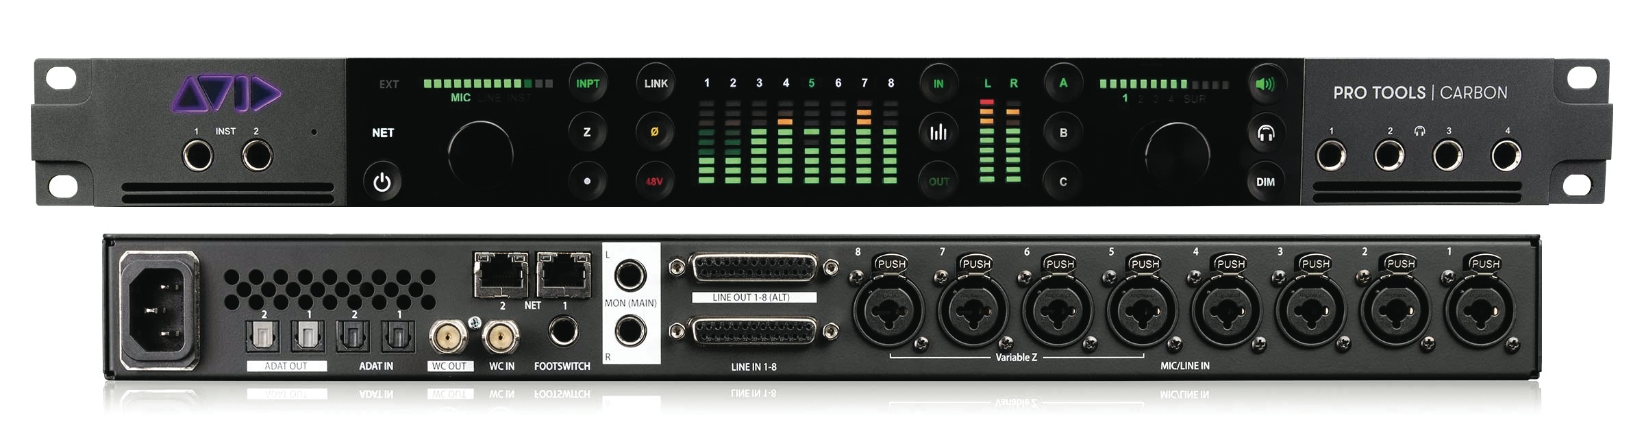 Pro Tools¦ Carbon Hybrid Audio Production System